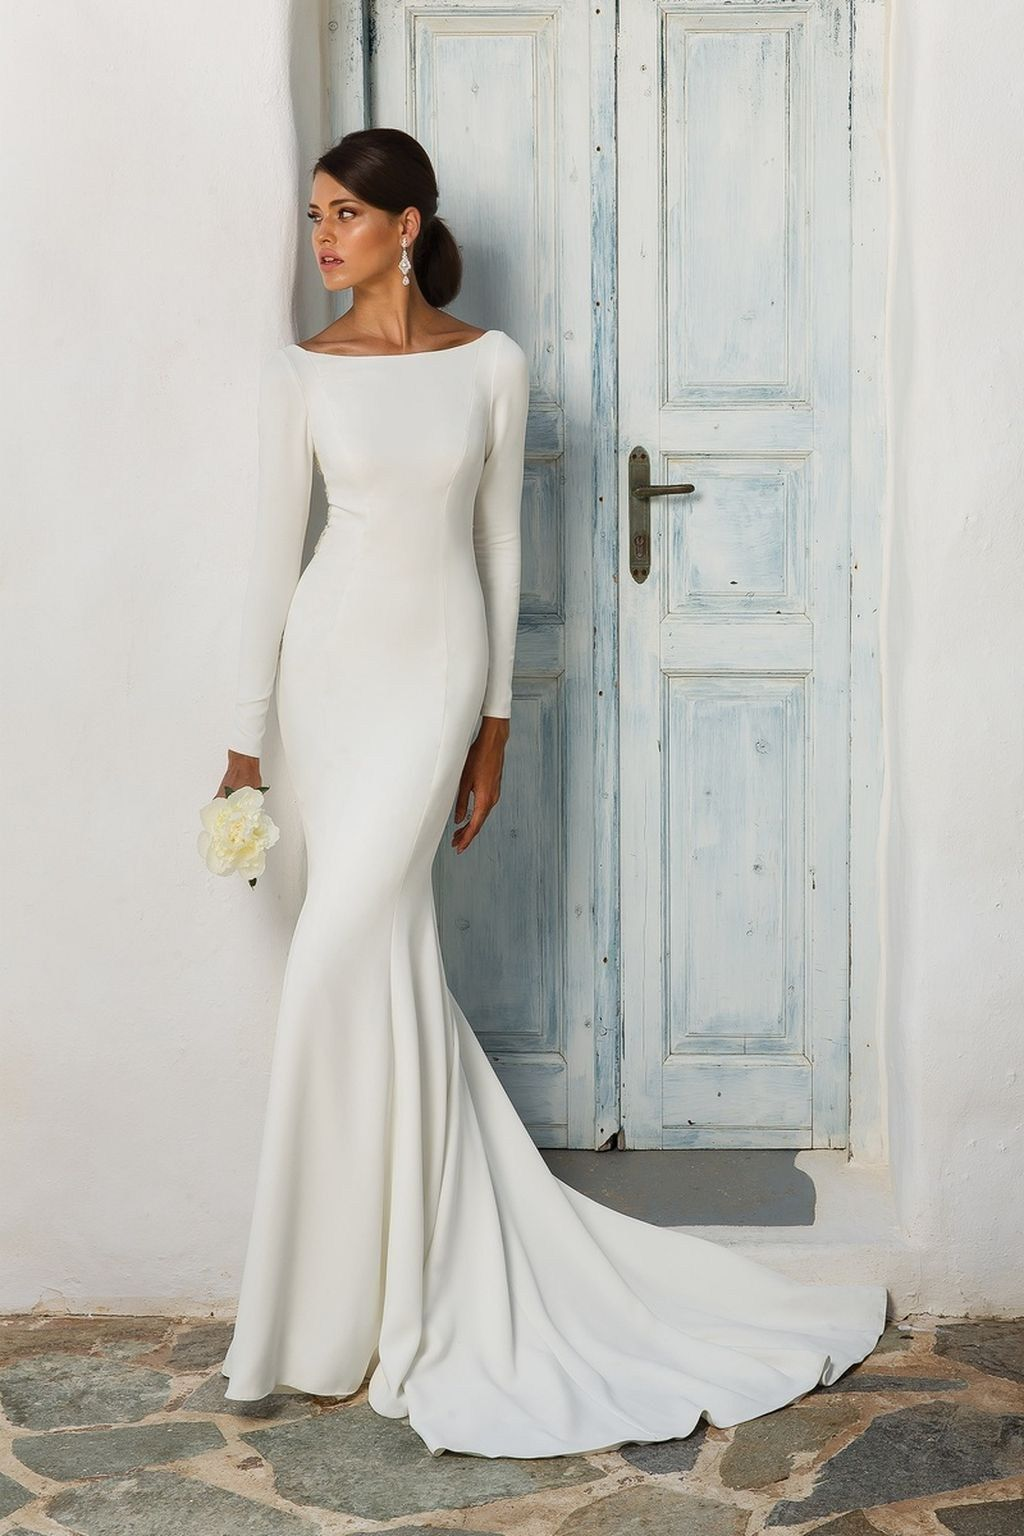 Simple long sleeves wedding dress